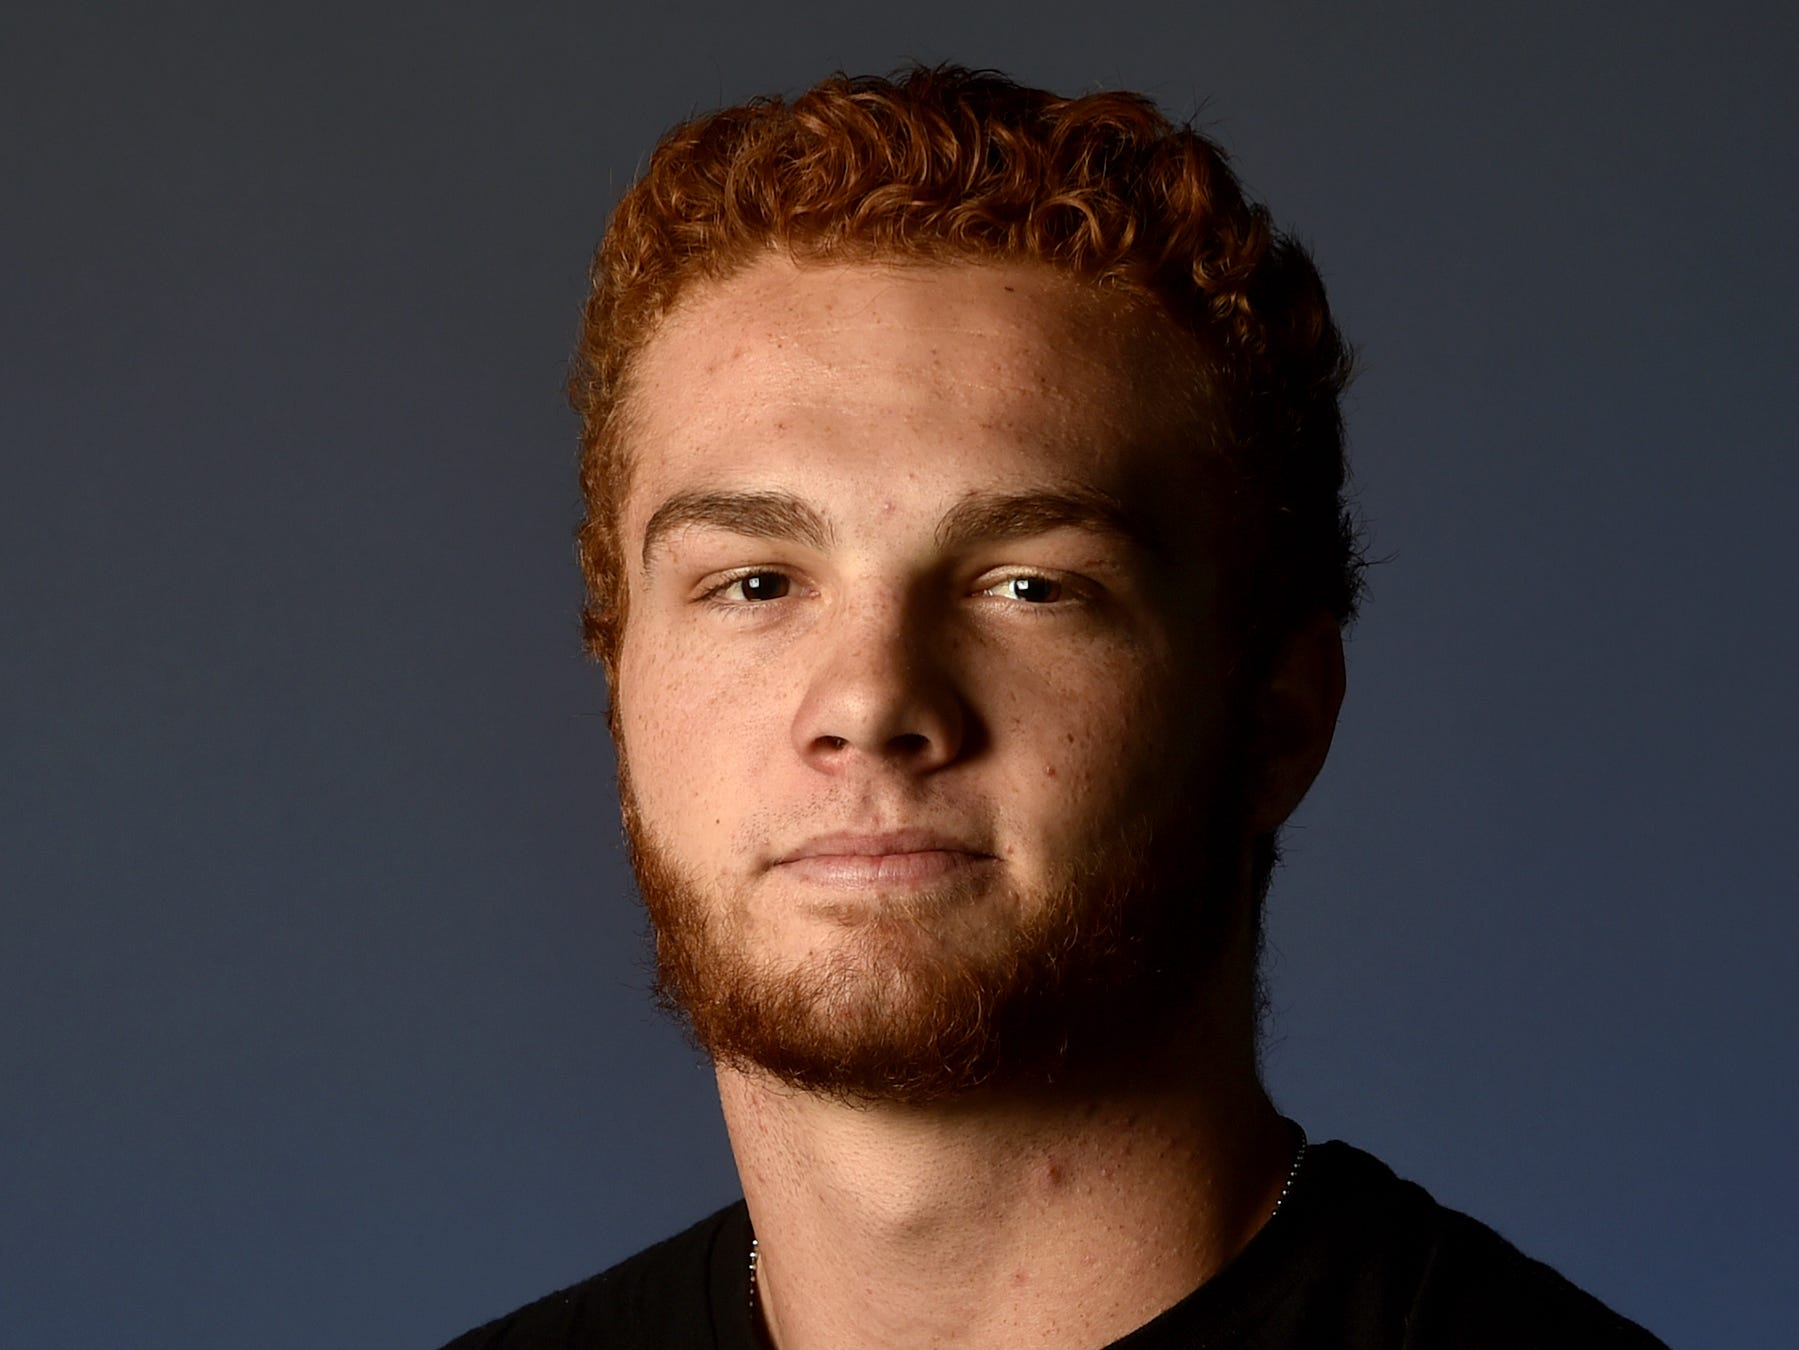 """JADON CLINE, Ventura, Linebacker: On a roster devoid of seniors, the 6-foot-1, 190-pound junior stepped forward as a leader on both sides of the ball. The first-team All-Pacific View League linebacker had 44 tackles and four tackles for a loss. As an H-back and a slot receiver, he rushed for 152 yards and two touchdowns and caught 18 passes for 207 yards and three TDs. He had six catches for 64 yards and a key score in the upset 20-17 win at Buena. Cline enjoys working out, """"fixing stuff,"""" camping and surfing. He enjoys watching """"The Big Bang Theory,"""" and eating """"anything."""" His favorite athlete is Phillip Lindsay and he roots for the Denver Broncos."""